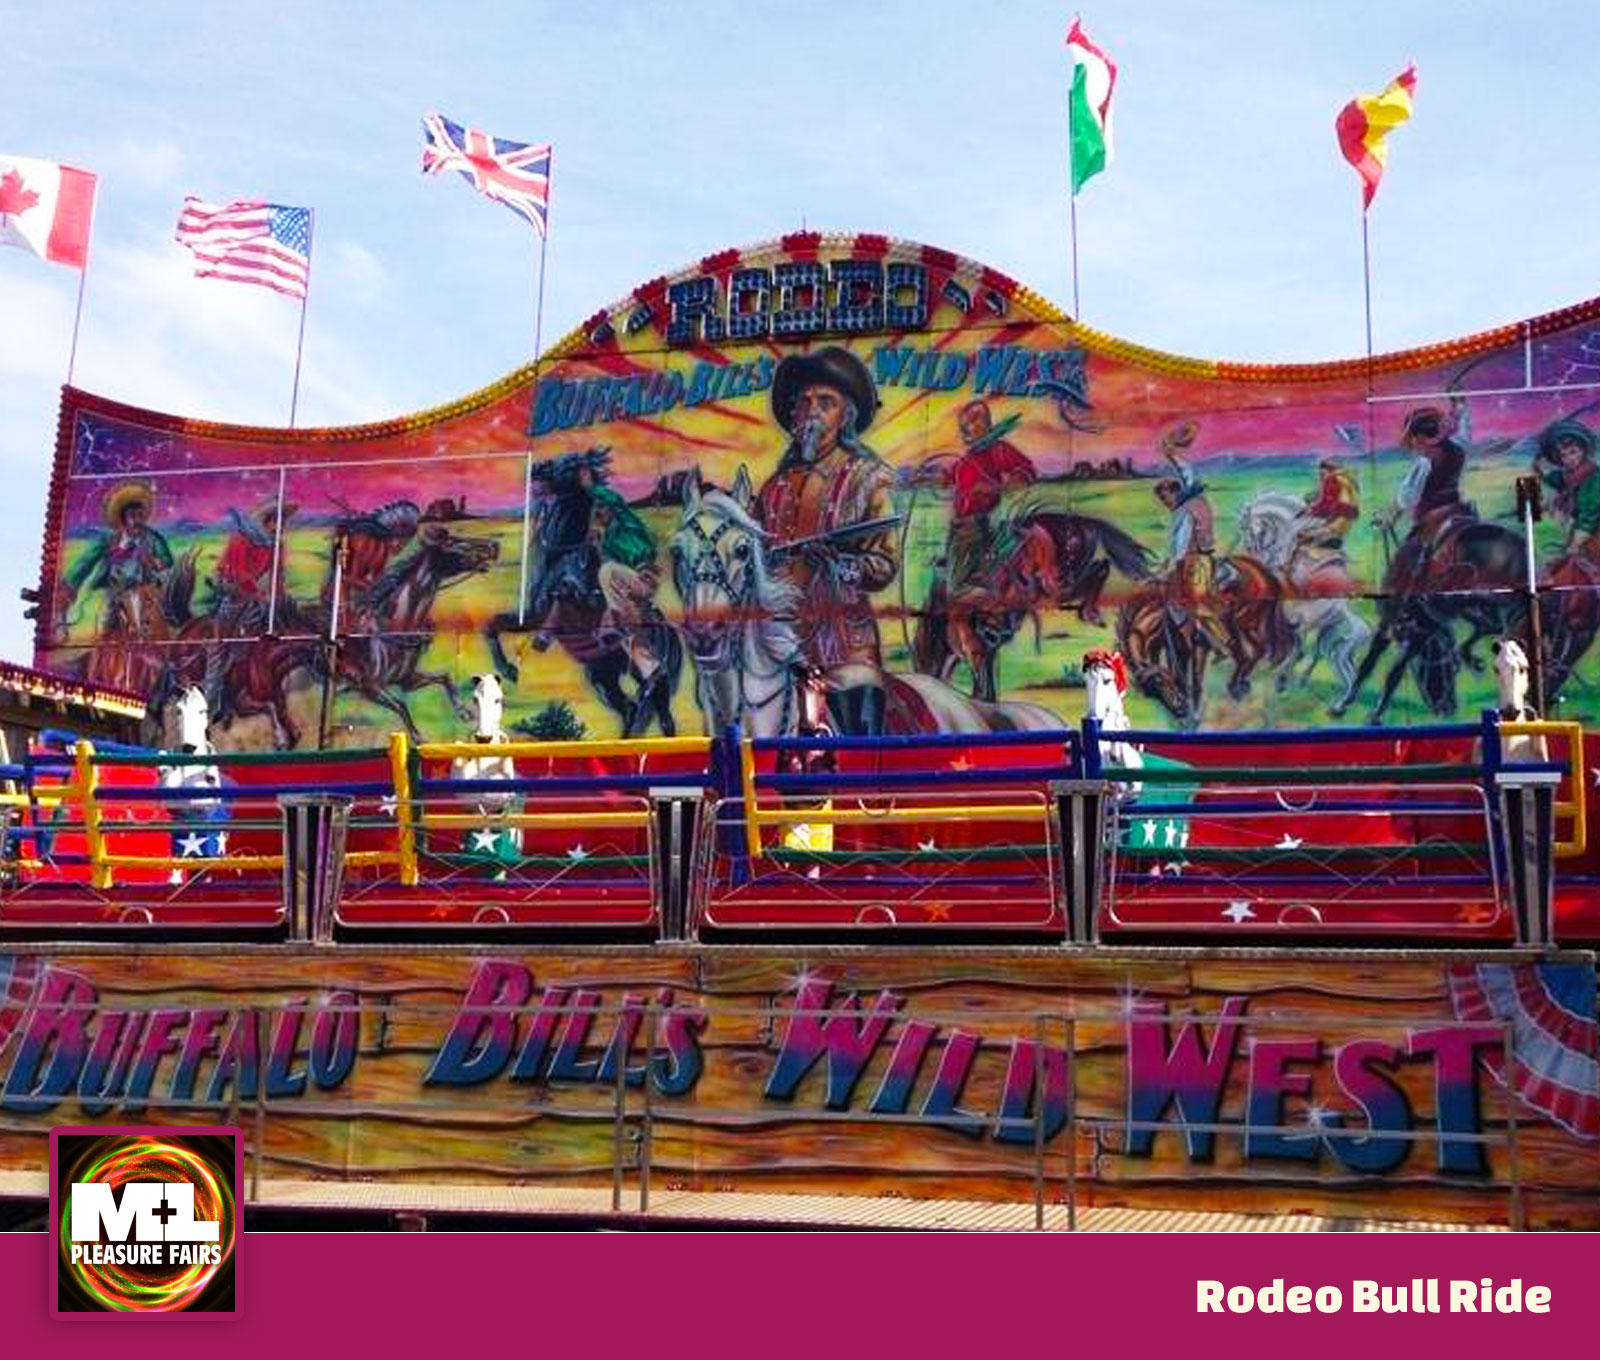 Rodeo Bull Ride Image